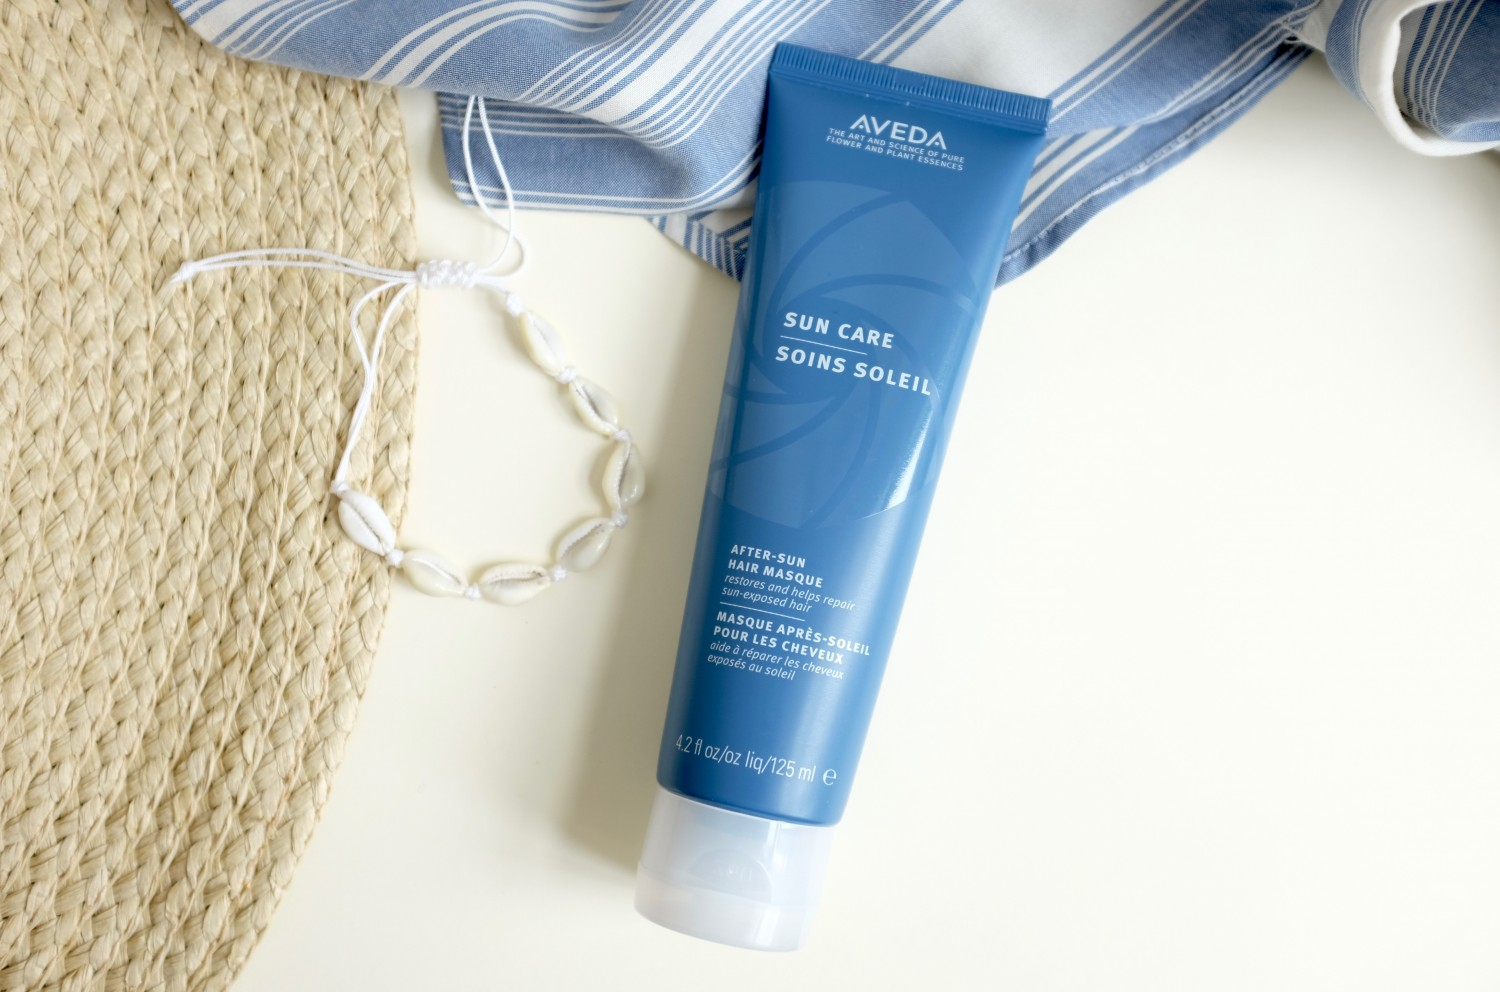 Summer Hair Repair - Aveda After-Sun Hair Masque